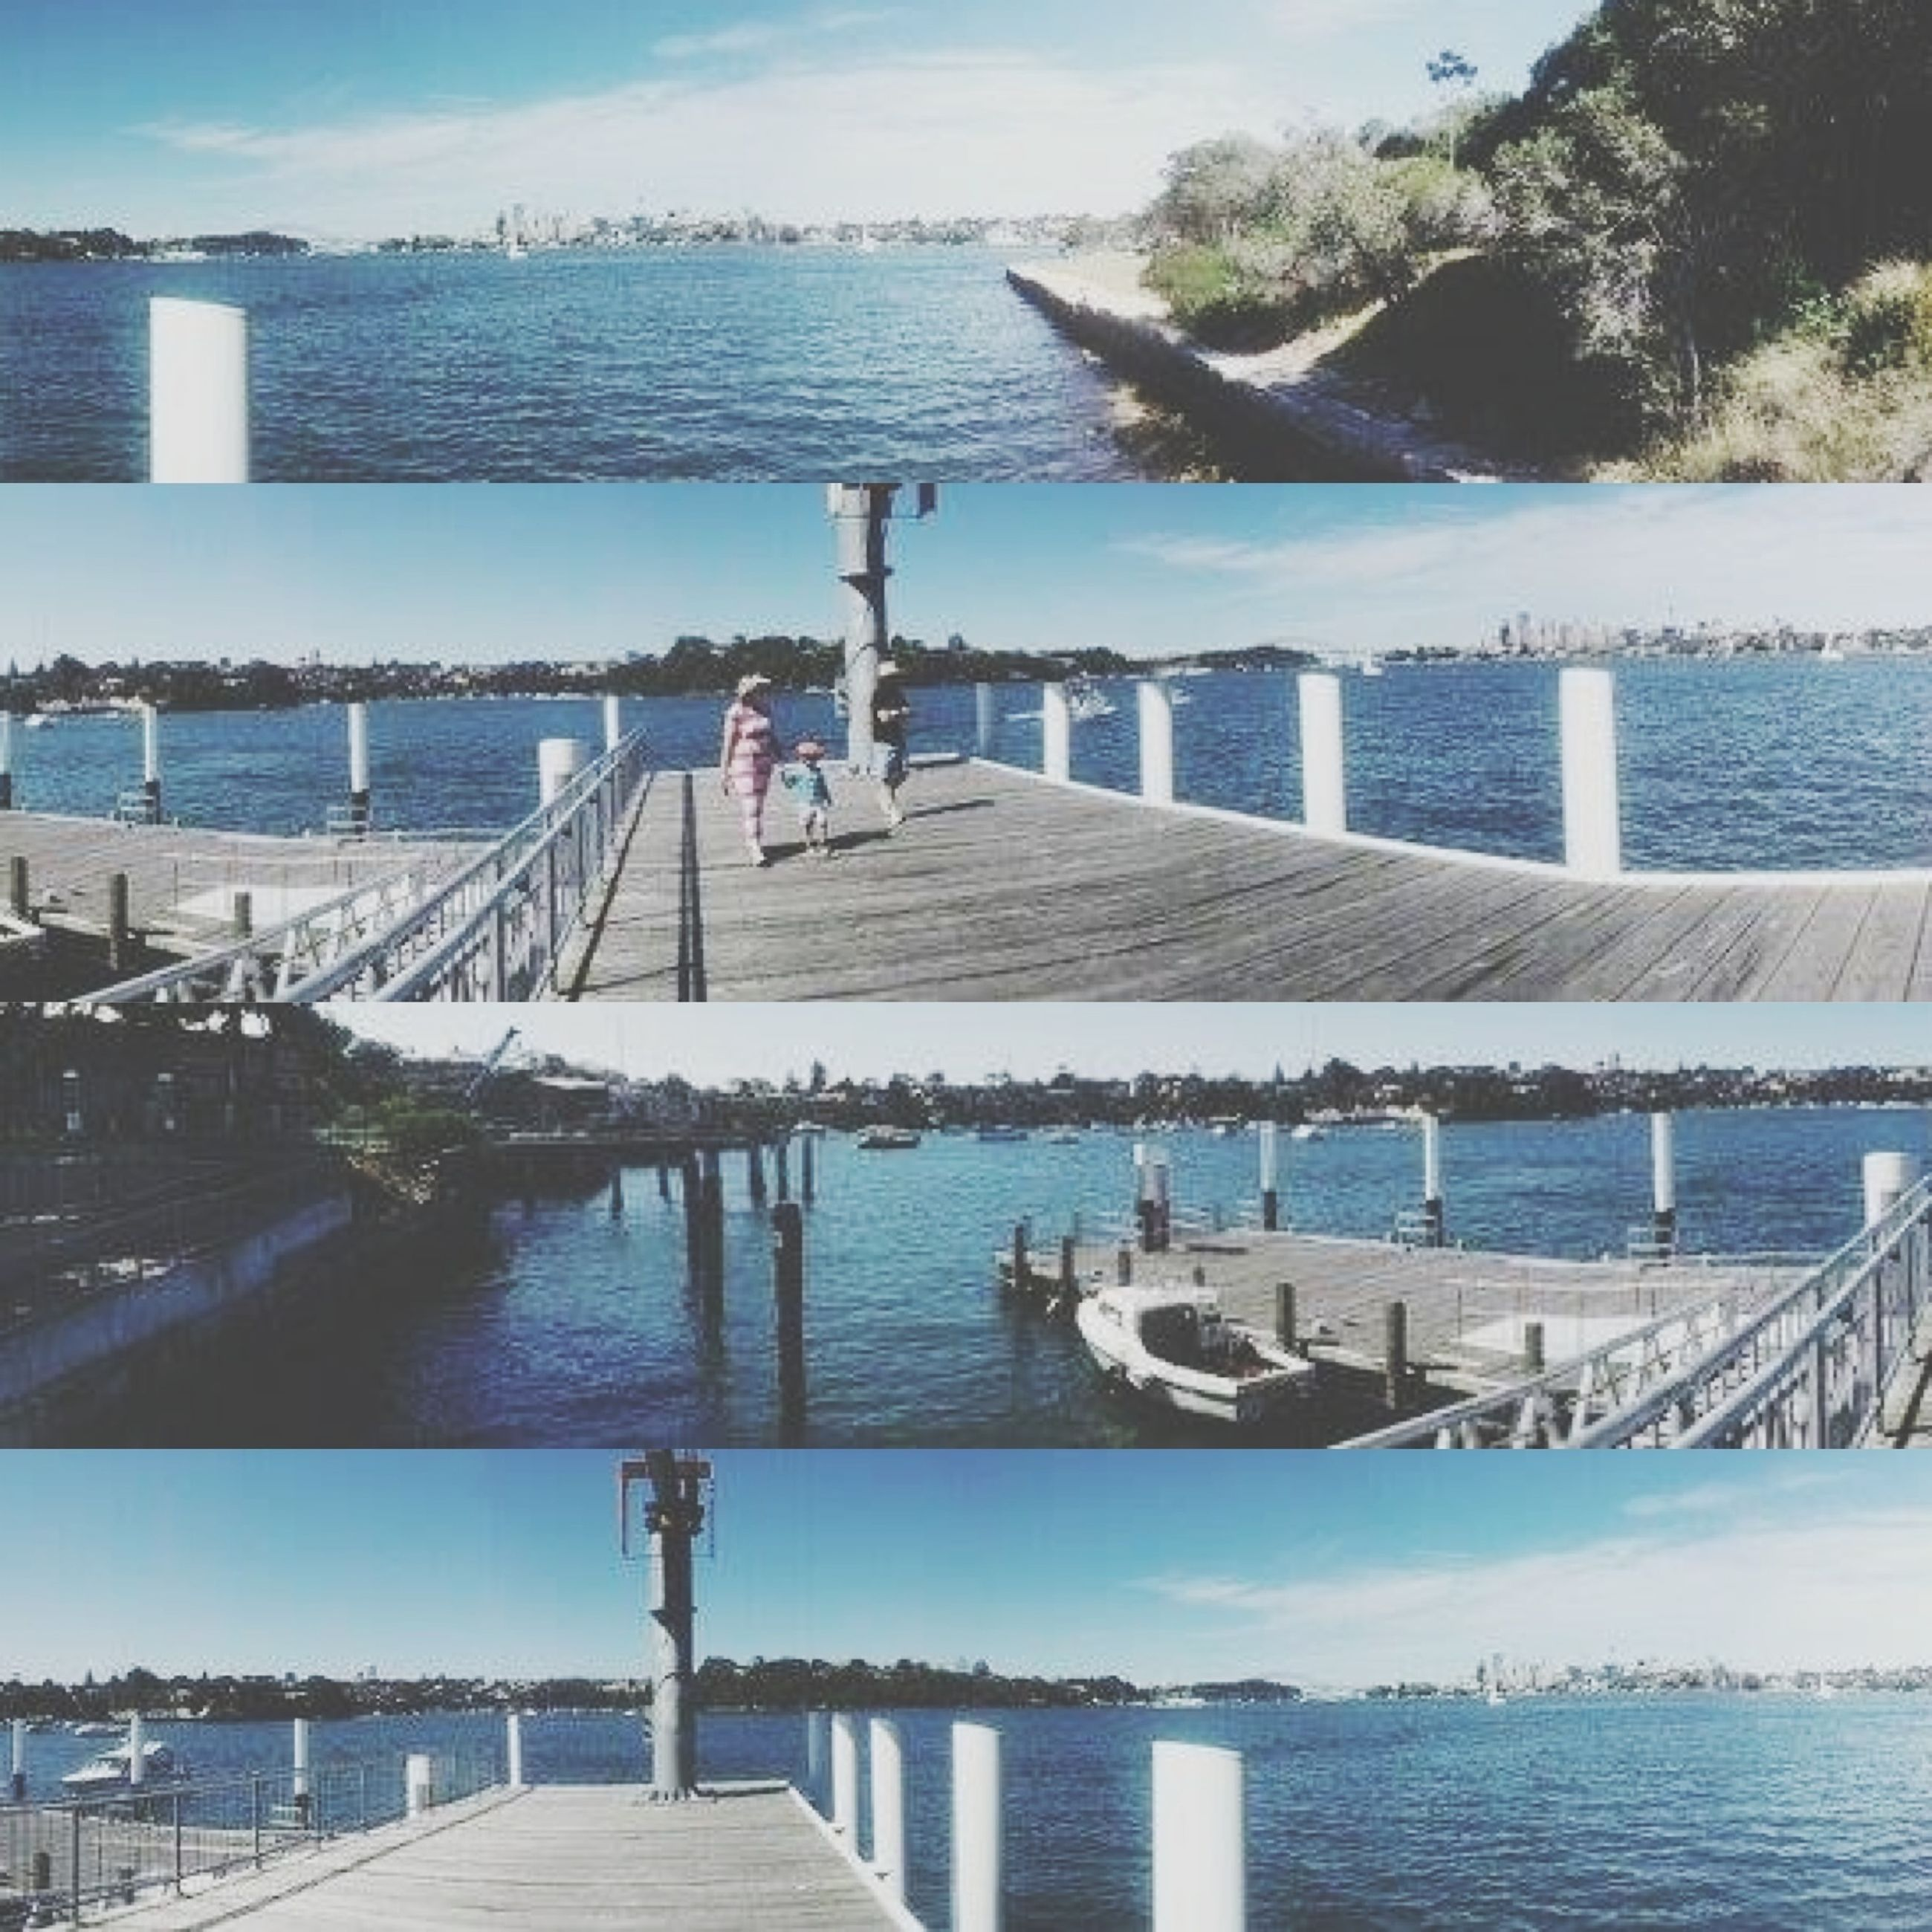 sea, water, pier, sky, built structure, beach, railing, blue, tranquil scene, horizon over water, nature, tranquility, scenics, architecture, beauty in nature, sunlight, travel destinations, day, incidental people, outdoors